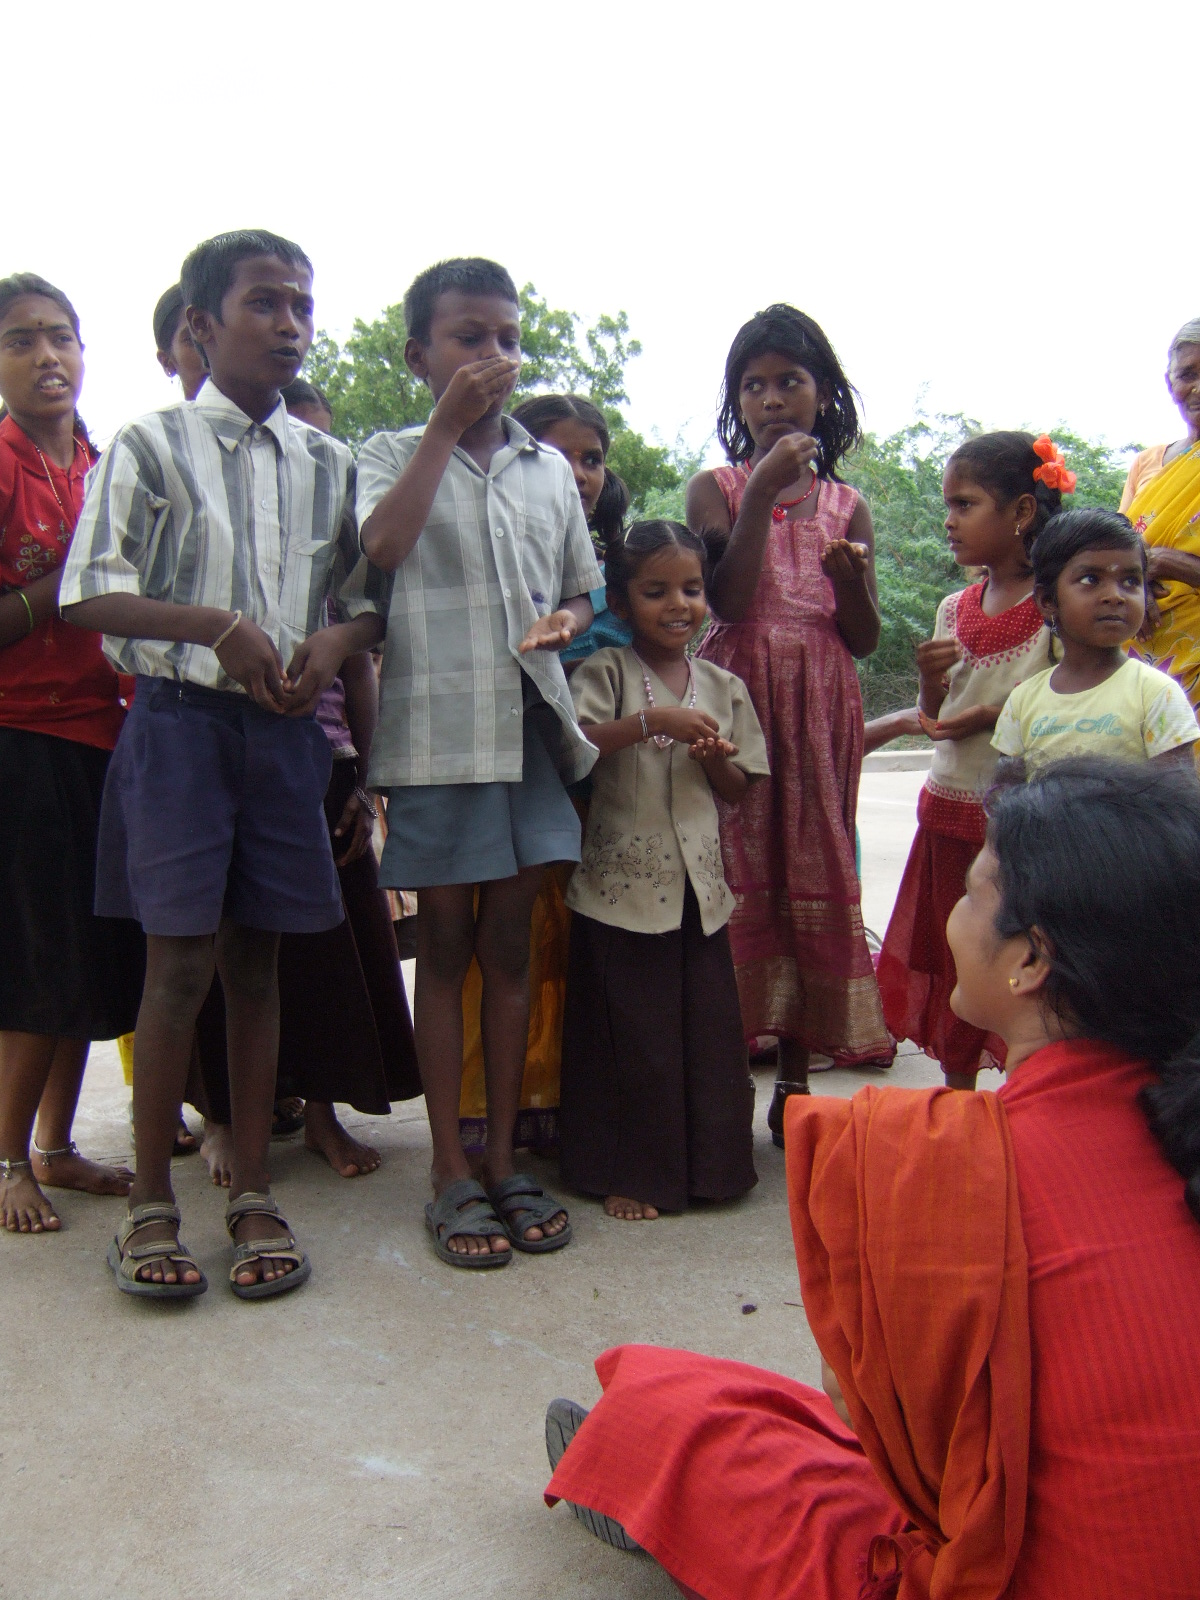 Singing Songs about Water and Hygiene